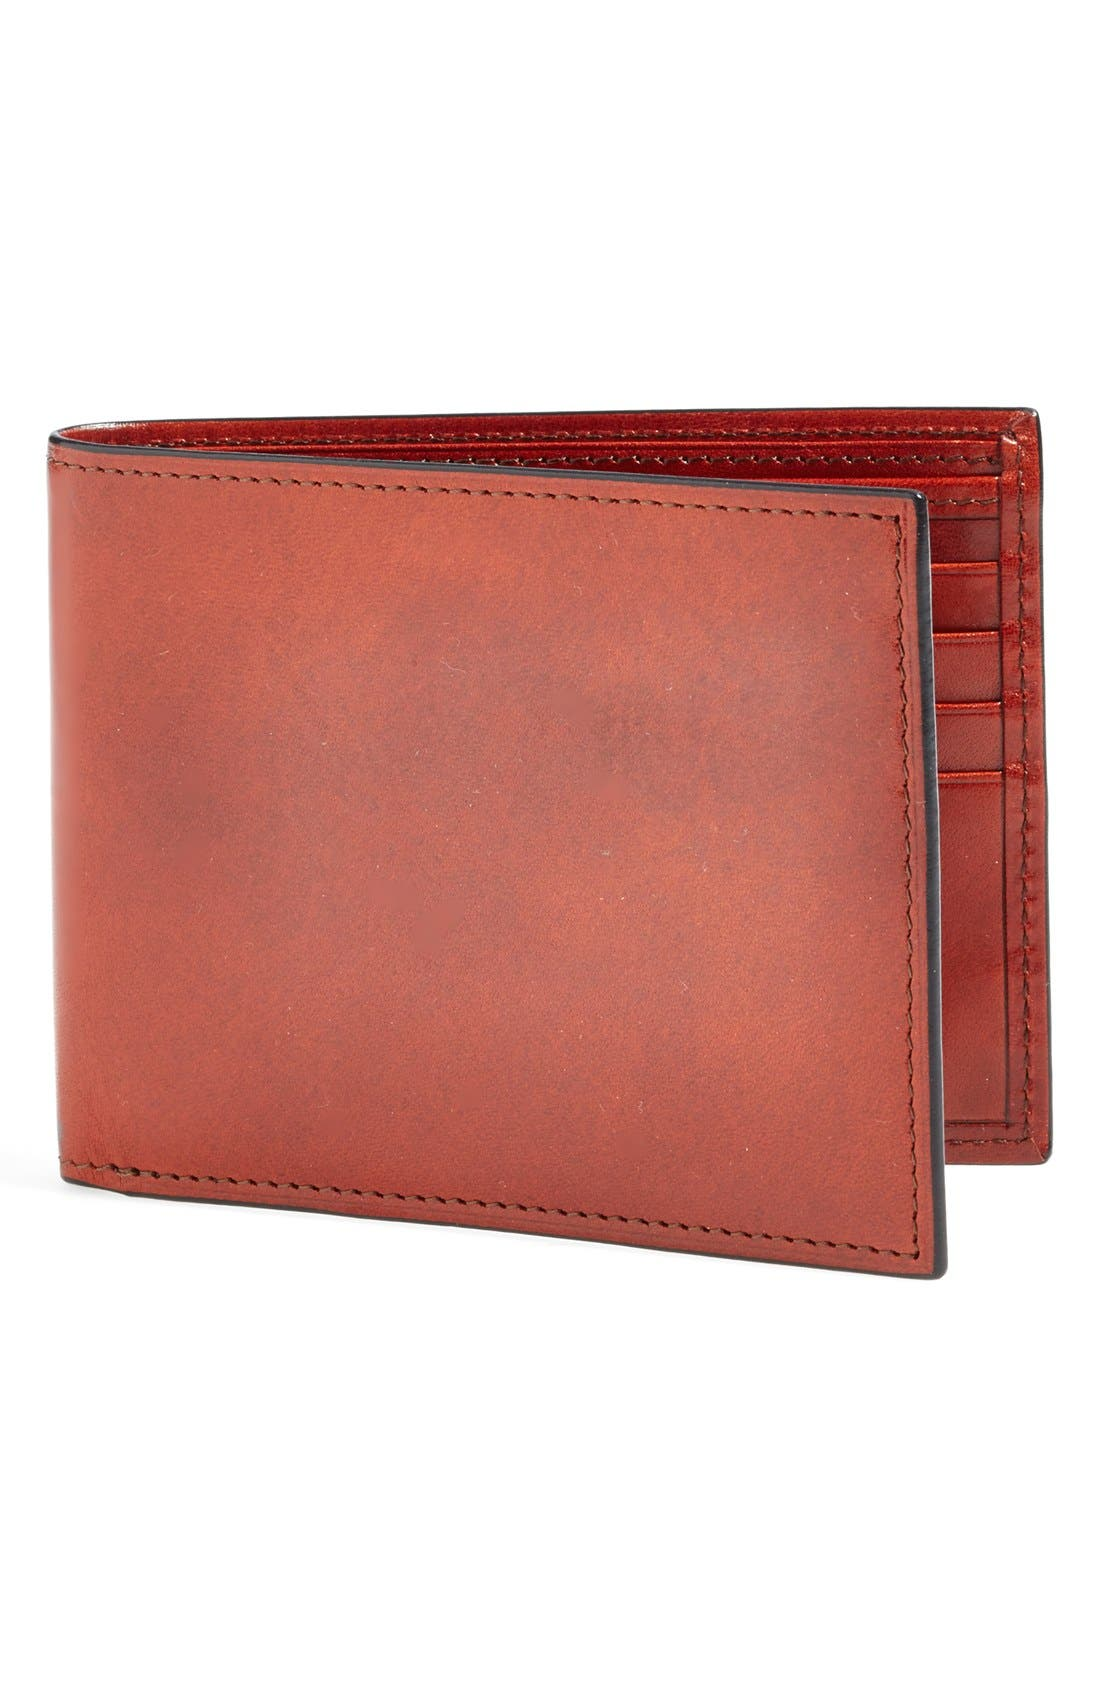 Alternate Image 1 Selected - Bosca 'Old Leather' Deluxe Wallet